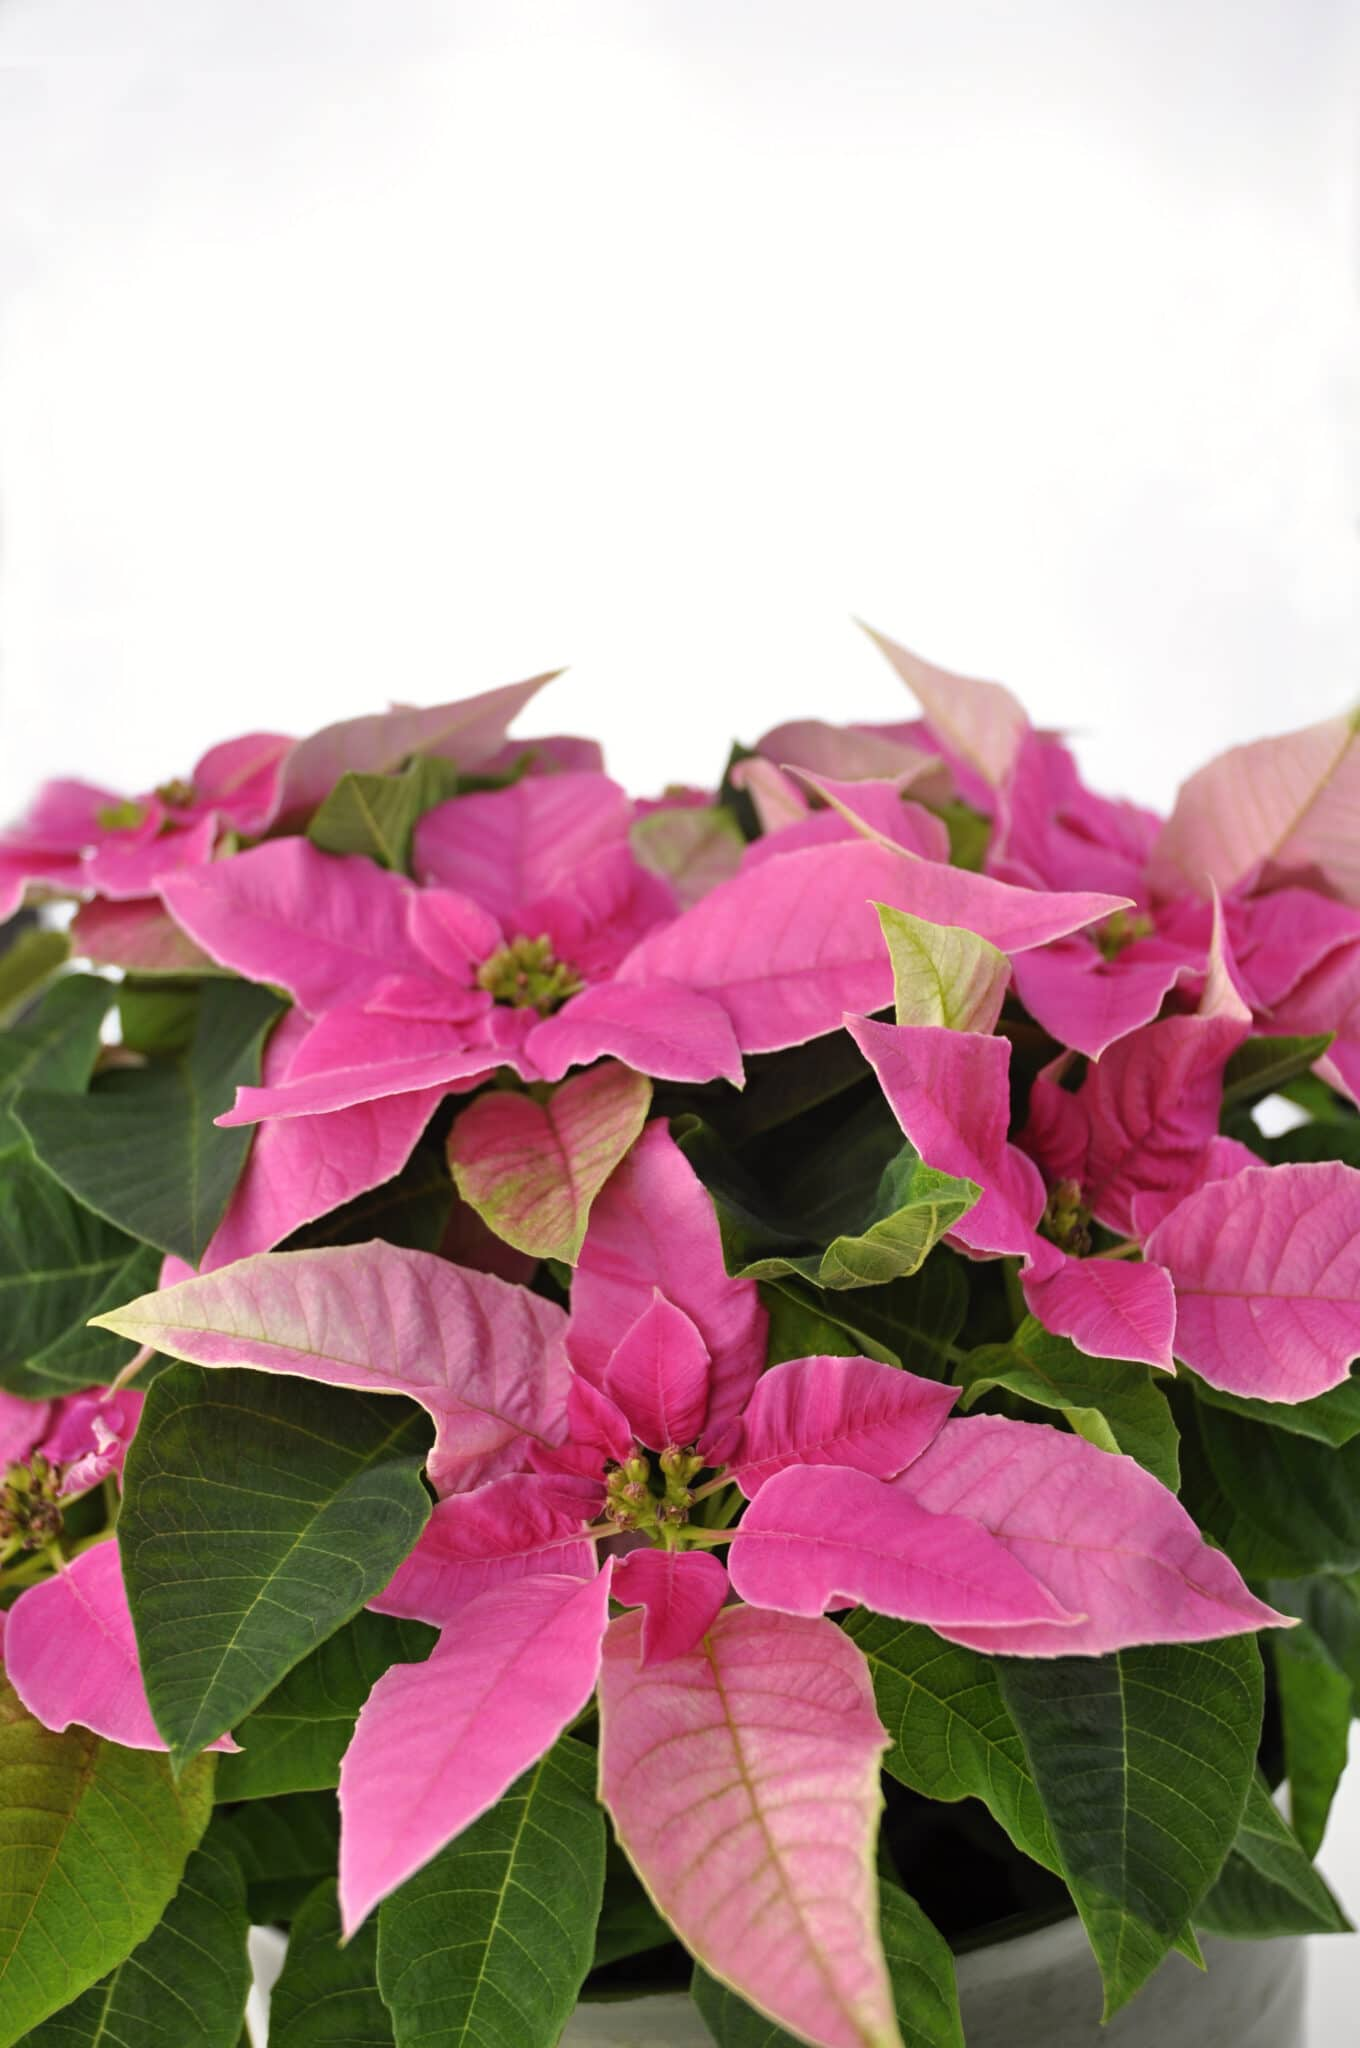 pink poinsettia with dark green leaves in a terracotta pot isolated against a bright white background.